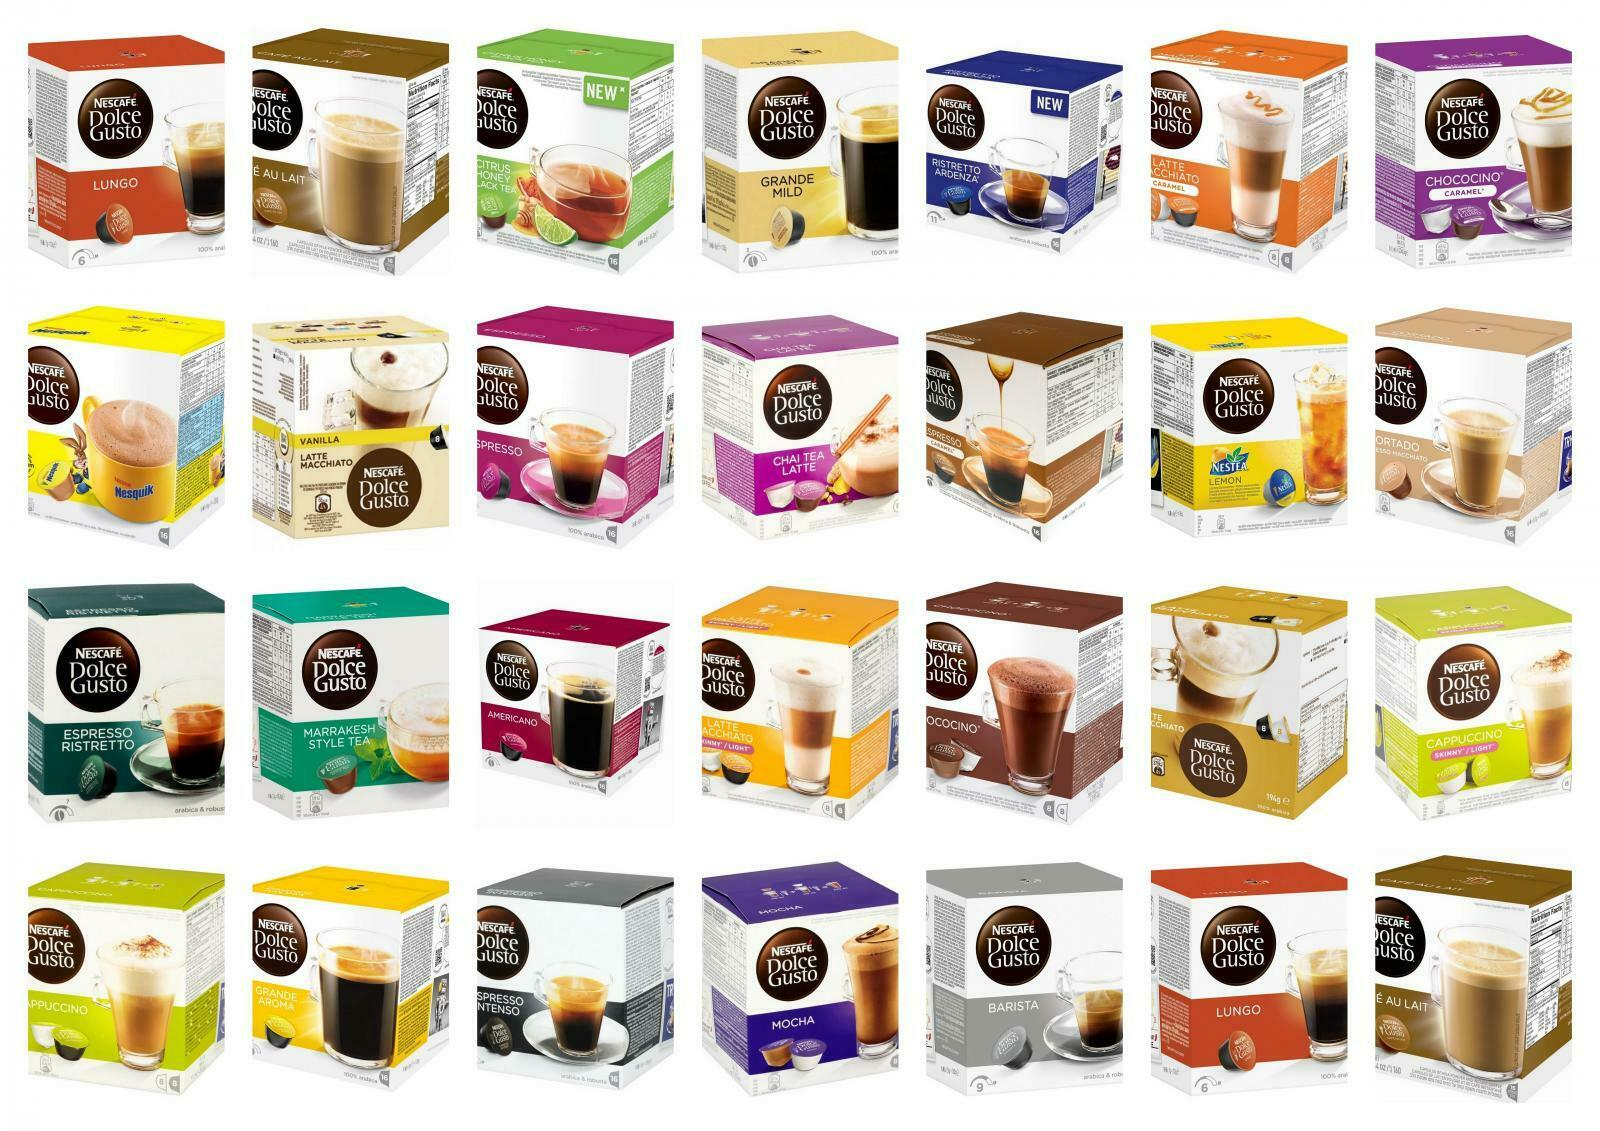 NESCAFE DOLCE GUSTO Coffee Pods Capsules - MULTI LISTING - Large Selection - £6.95 | PicClick UK